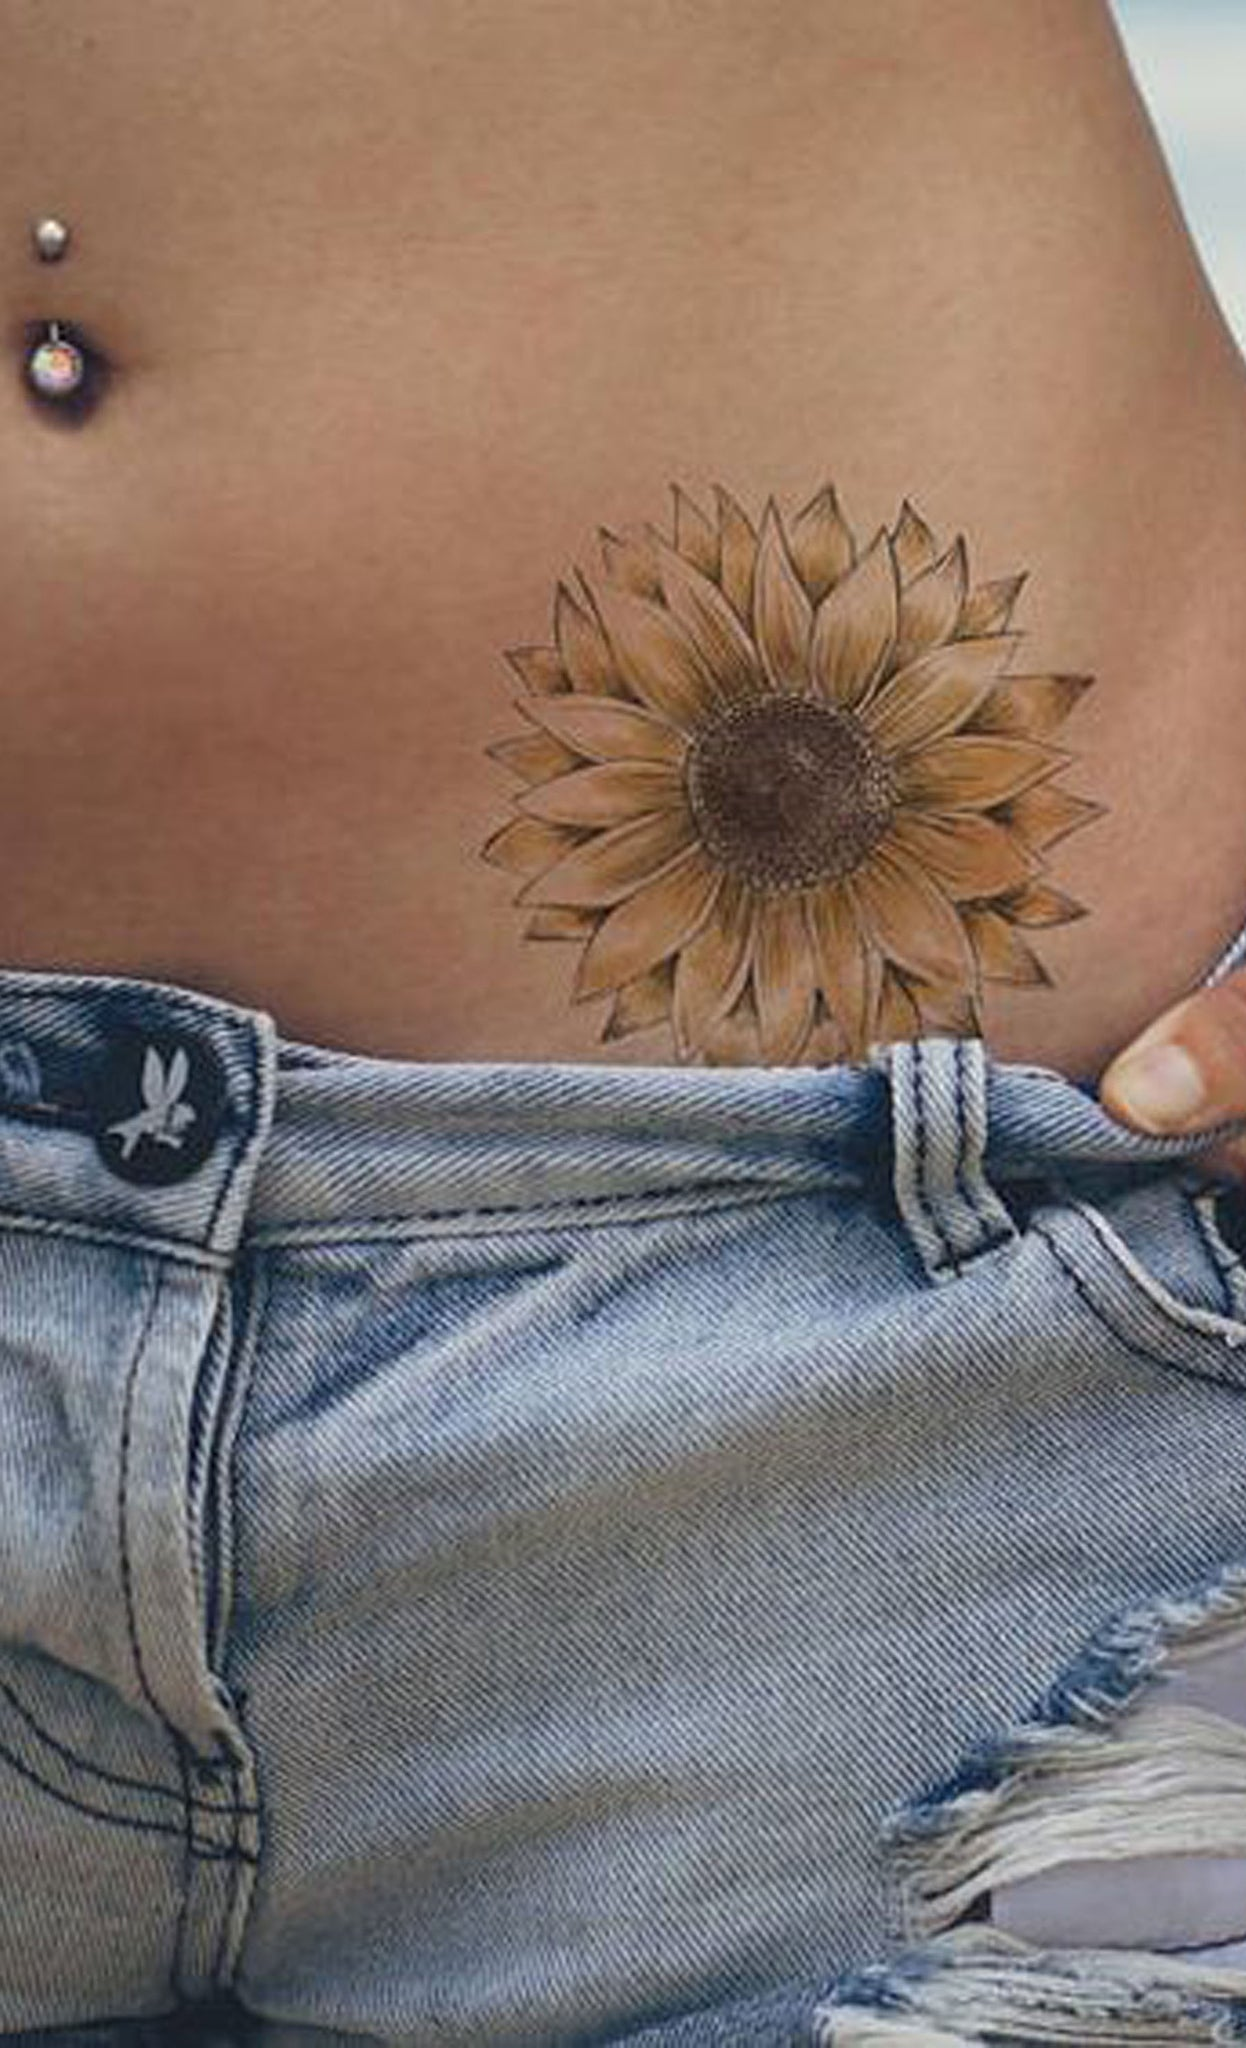 Delicate Sunflower Hip Tattoo Ideas for Women - Beautiful Flower Hip Tat - www.MyBodiArt.com #tattoos